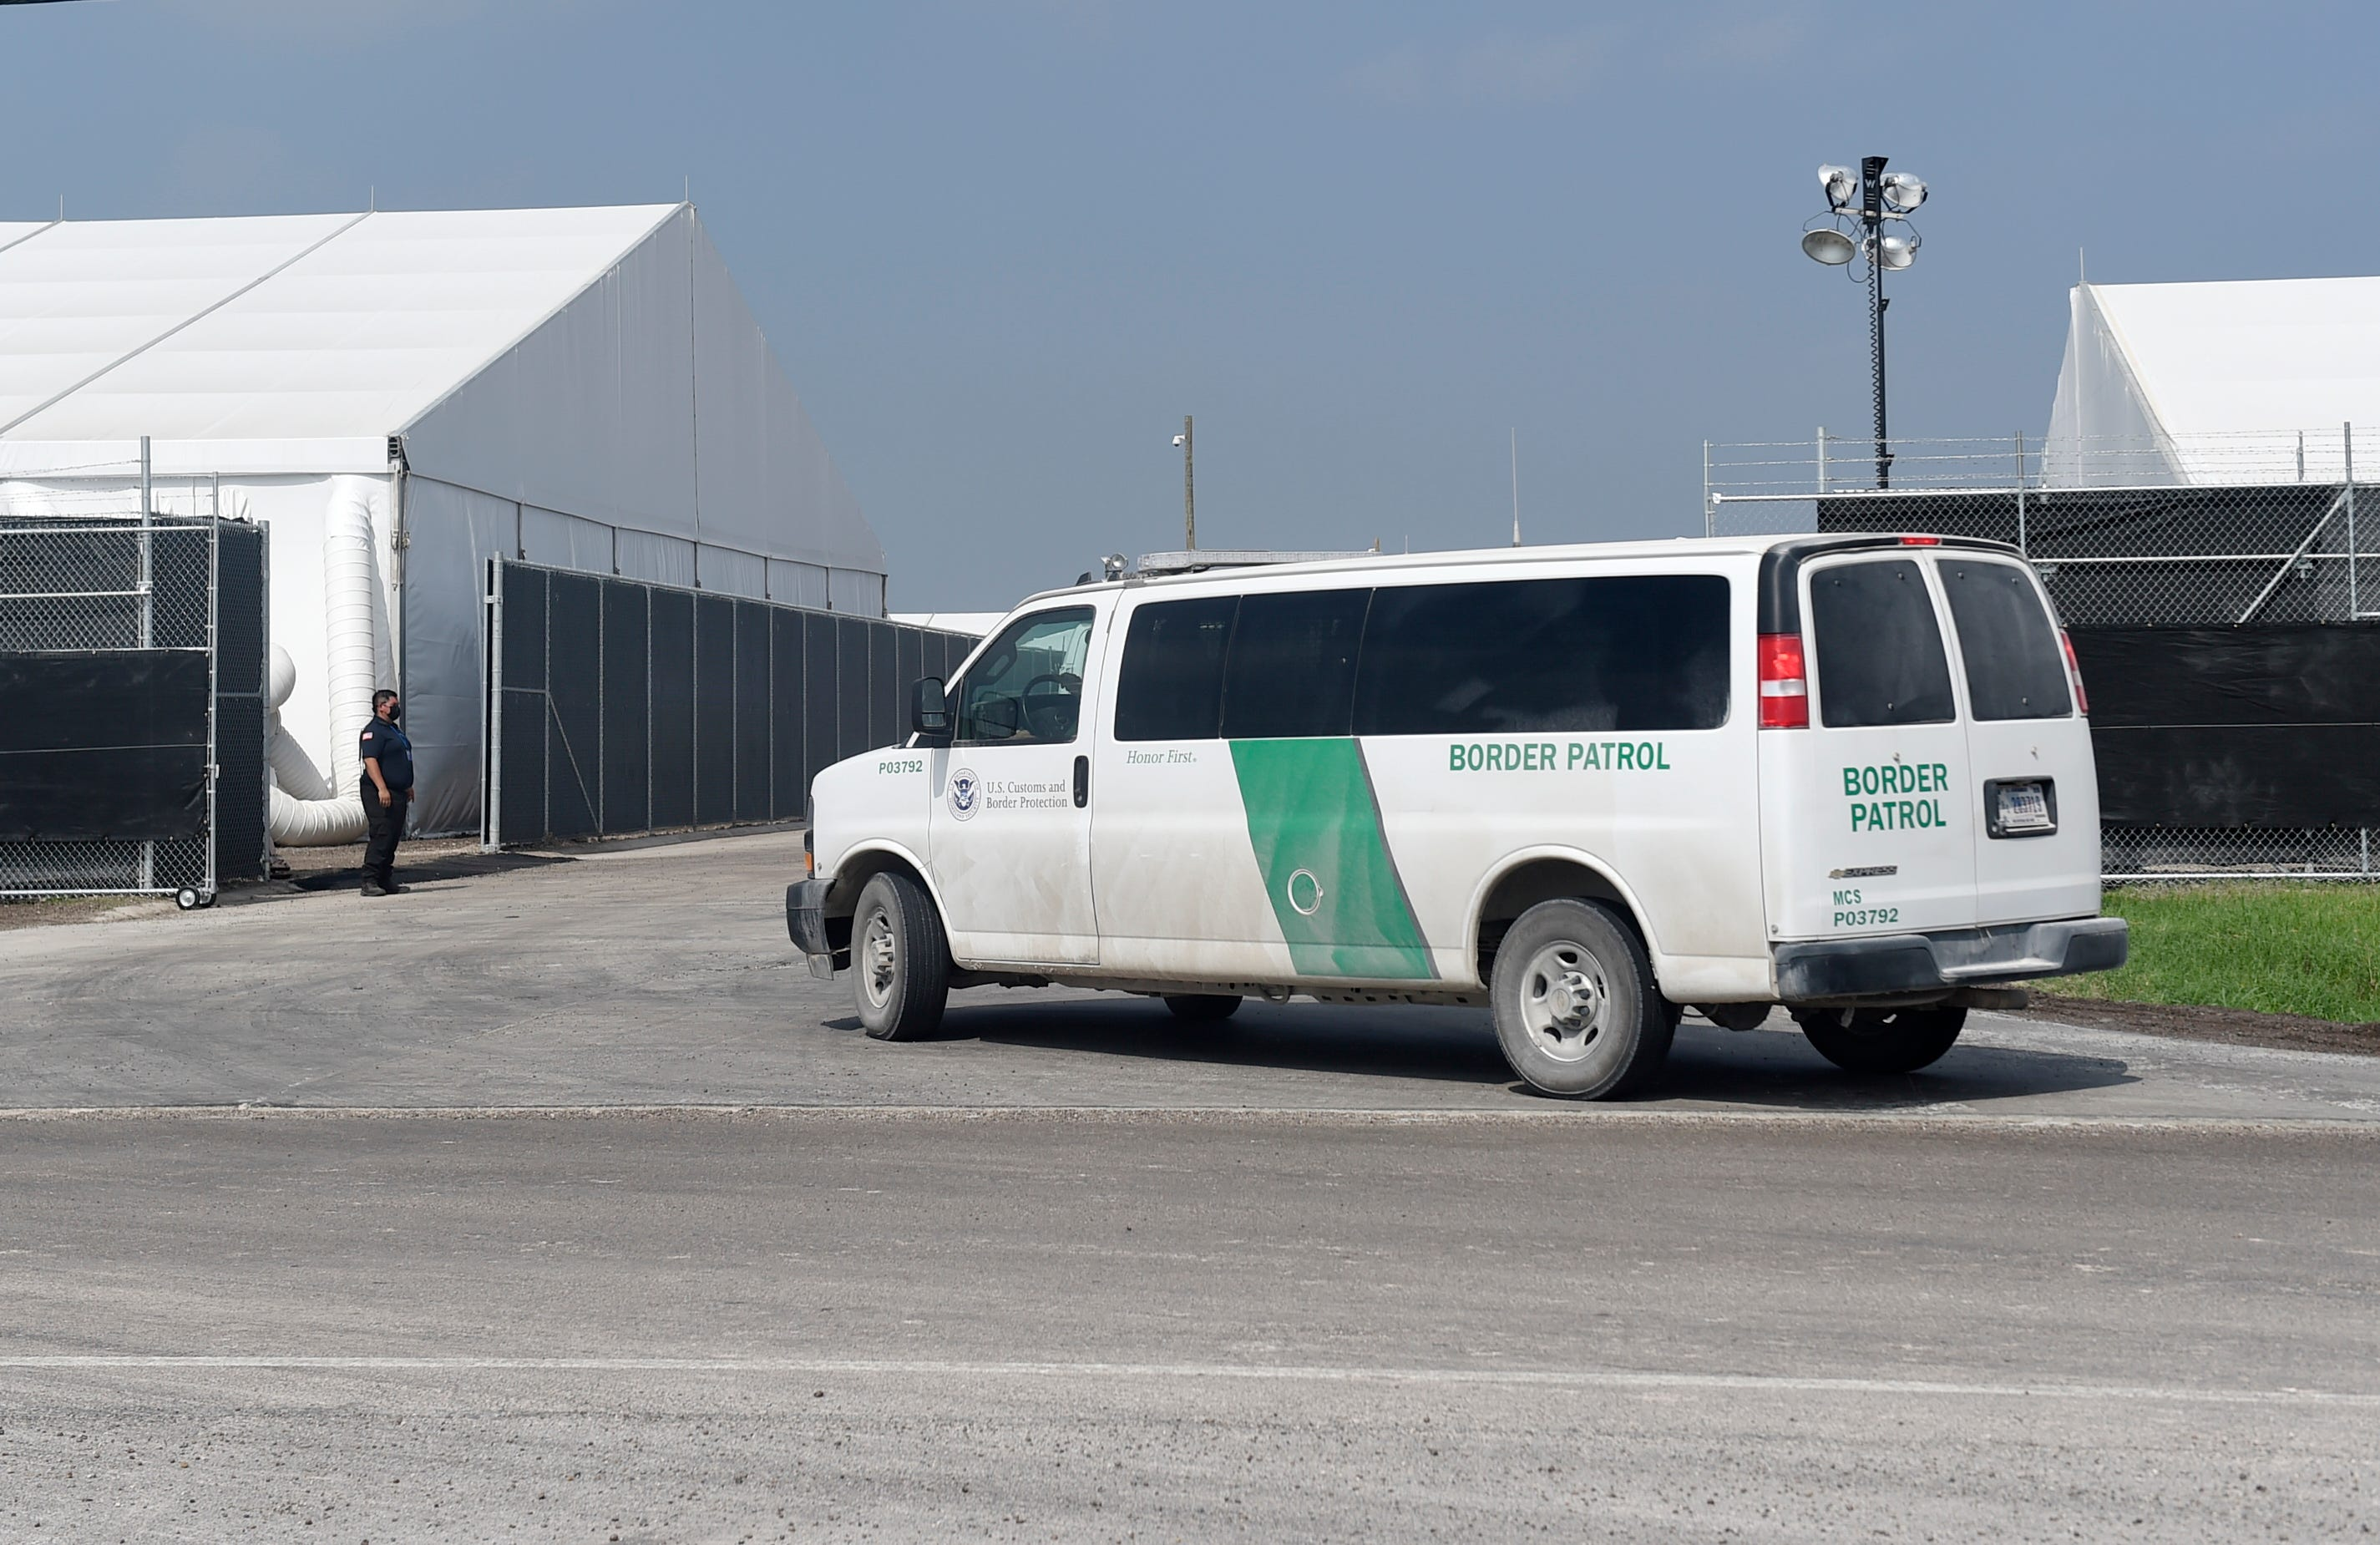 A Border Patrol van pulls into a U.S. Customs and Border Protection temporary processing center April 9 in Donna, Texas. The center was built to increase capacity for incoming migrants along the Rio Grande Valley sector.